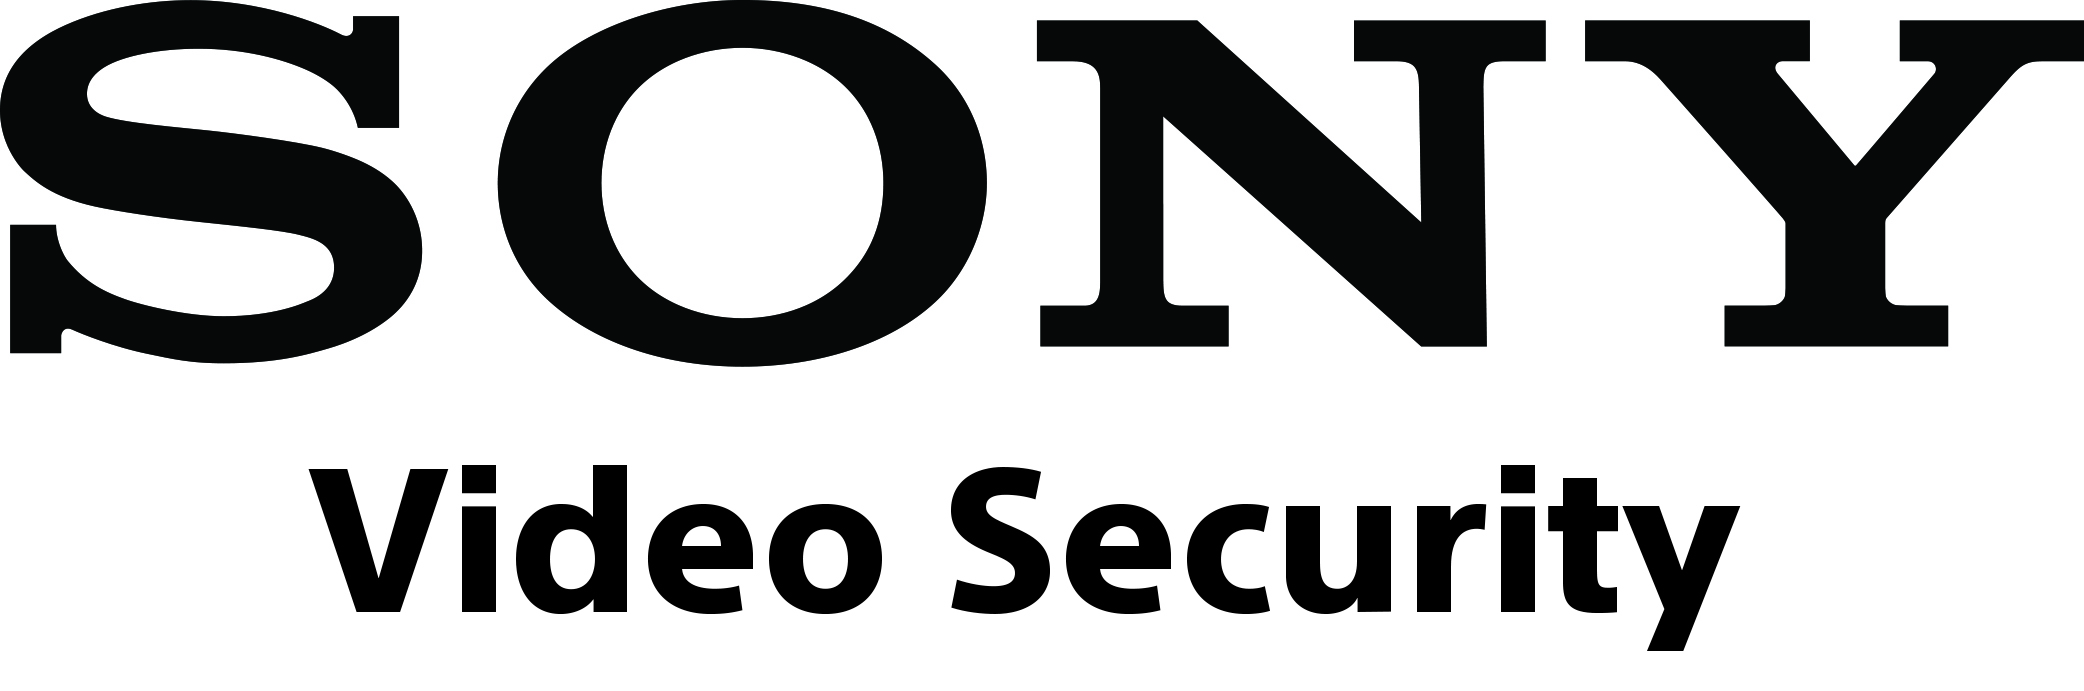 Sony Video Security